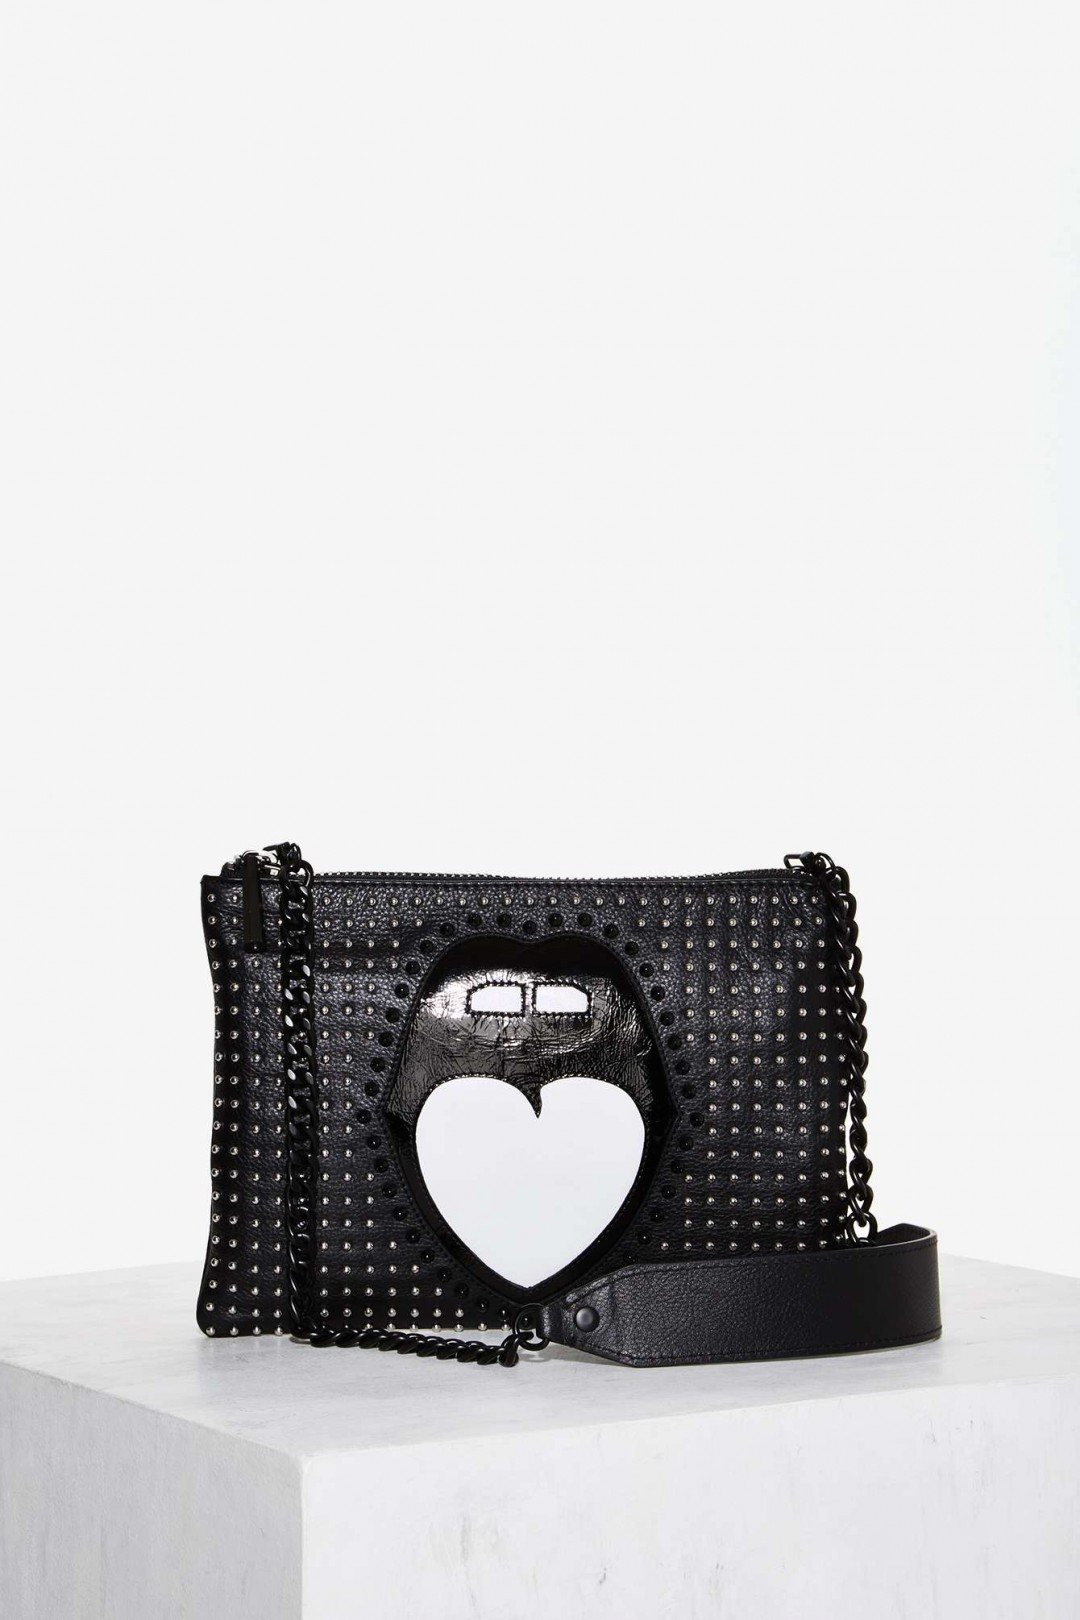 1699e23101f5 Nasty Gal Mouth Off Studded Leather Bag - ShopperBoard